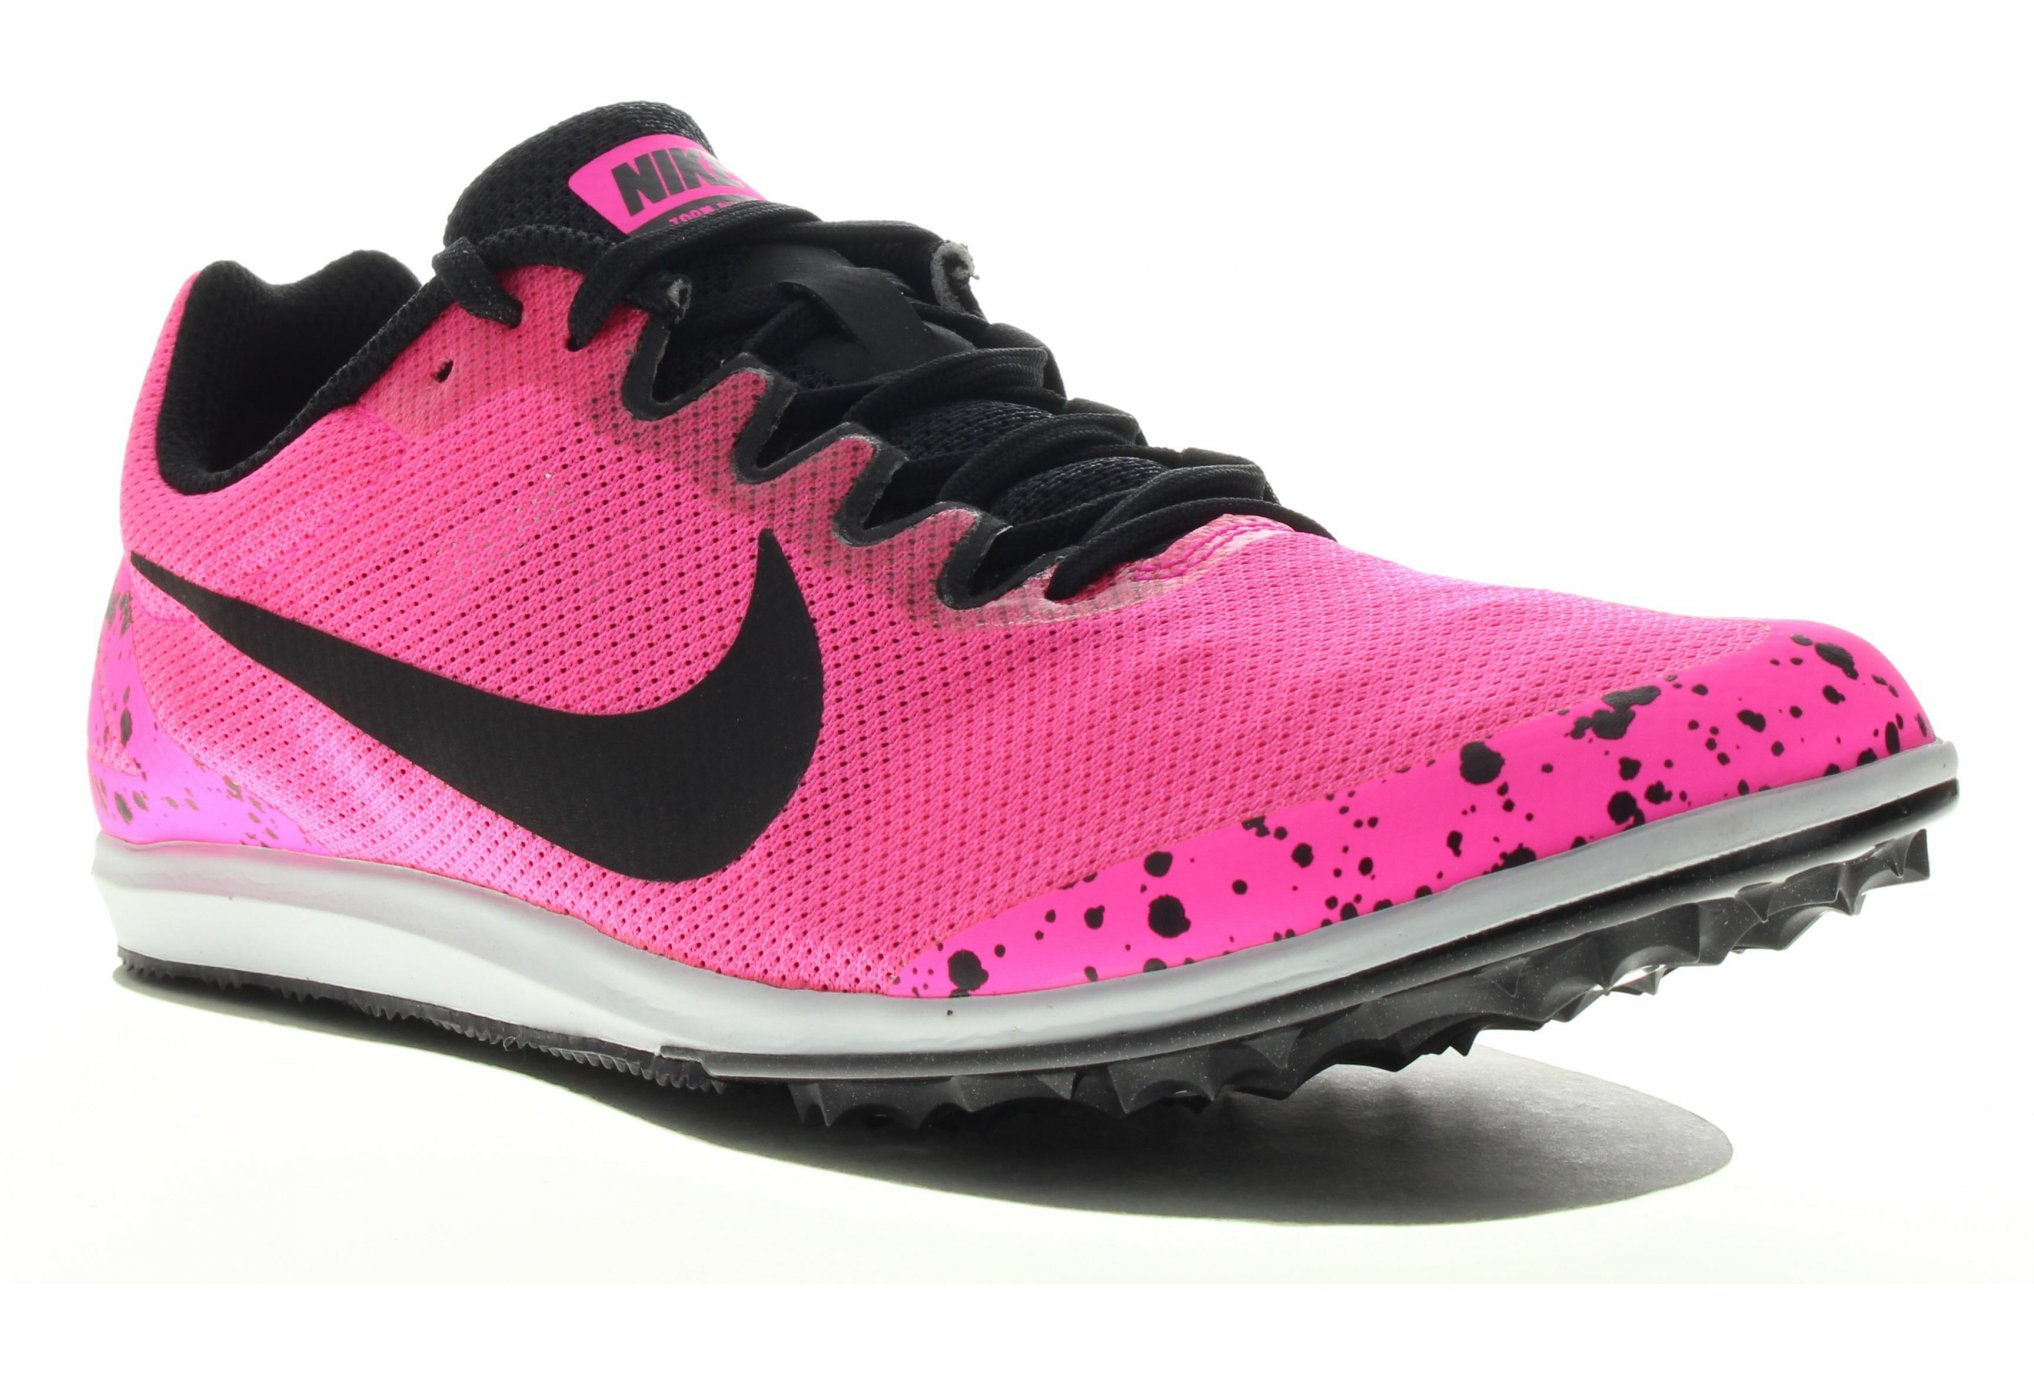 Nike Zoom Rival D 10 W Chaussures running femme